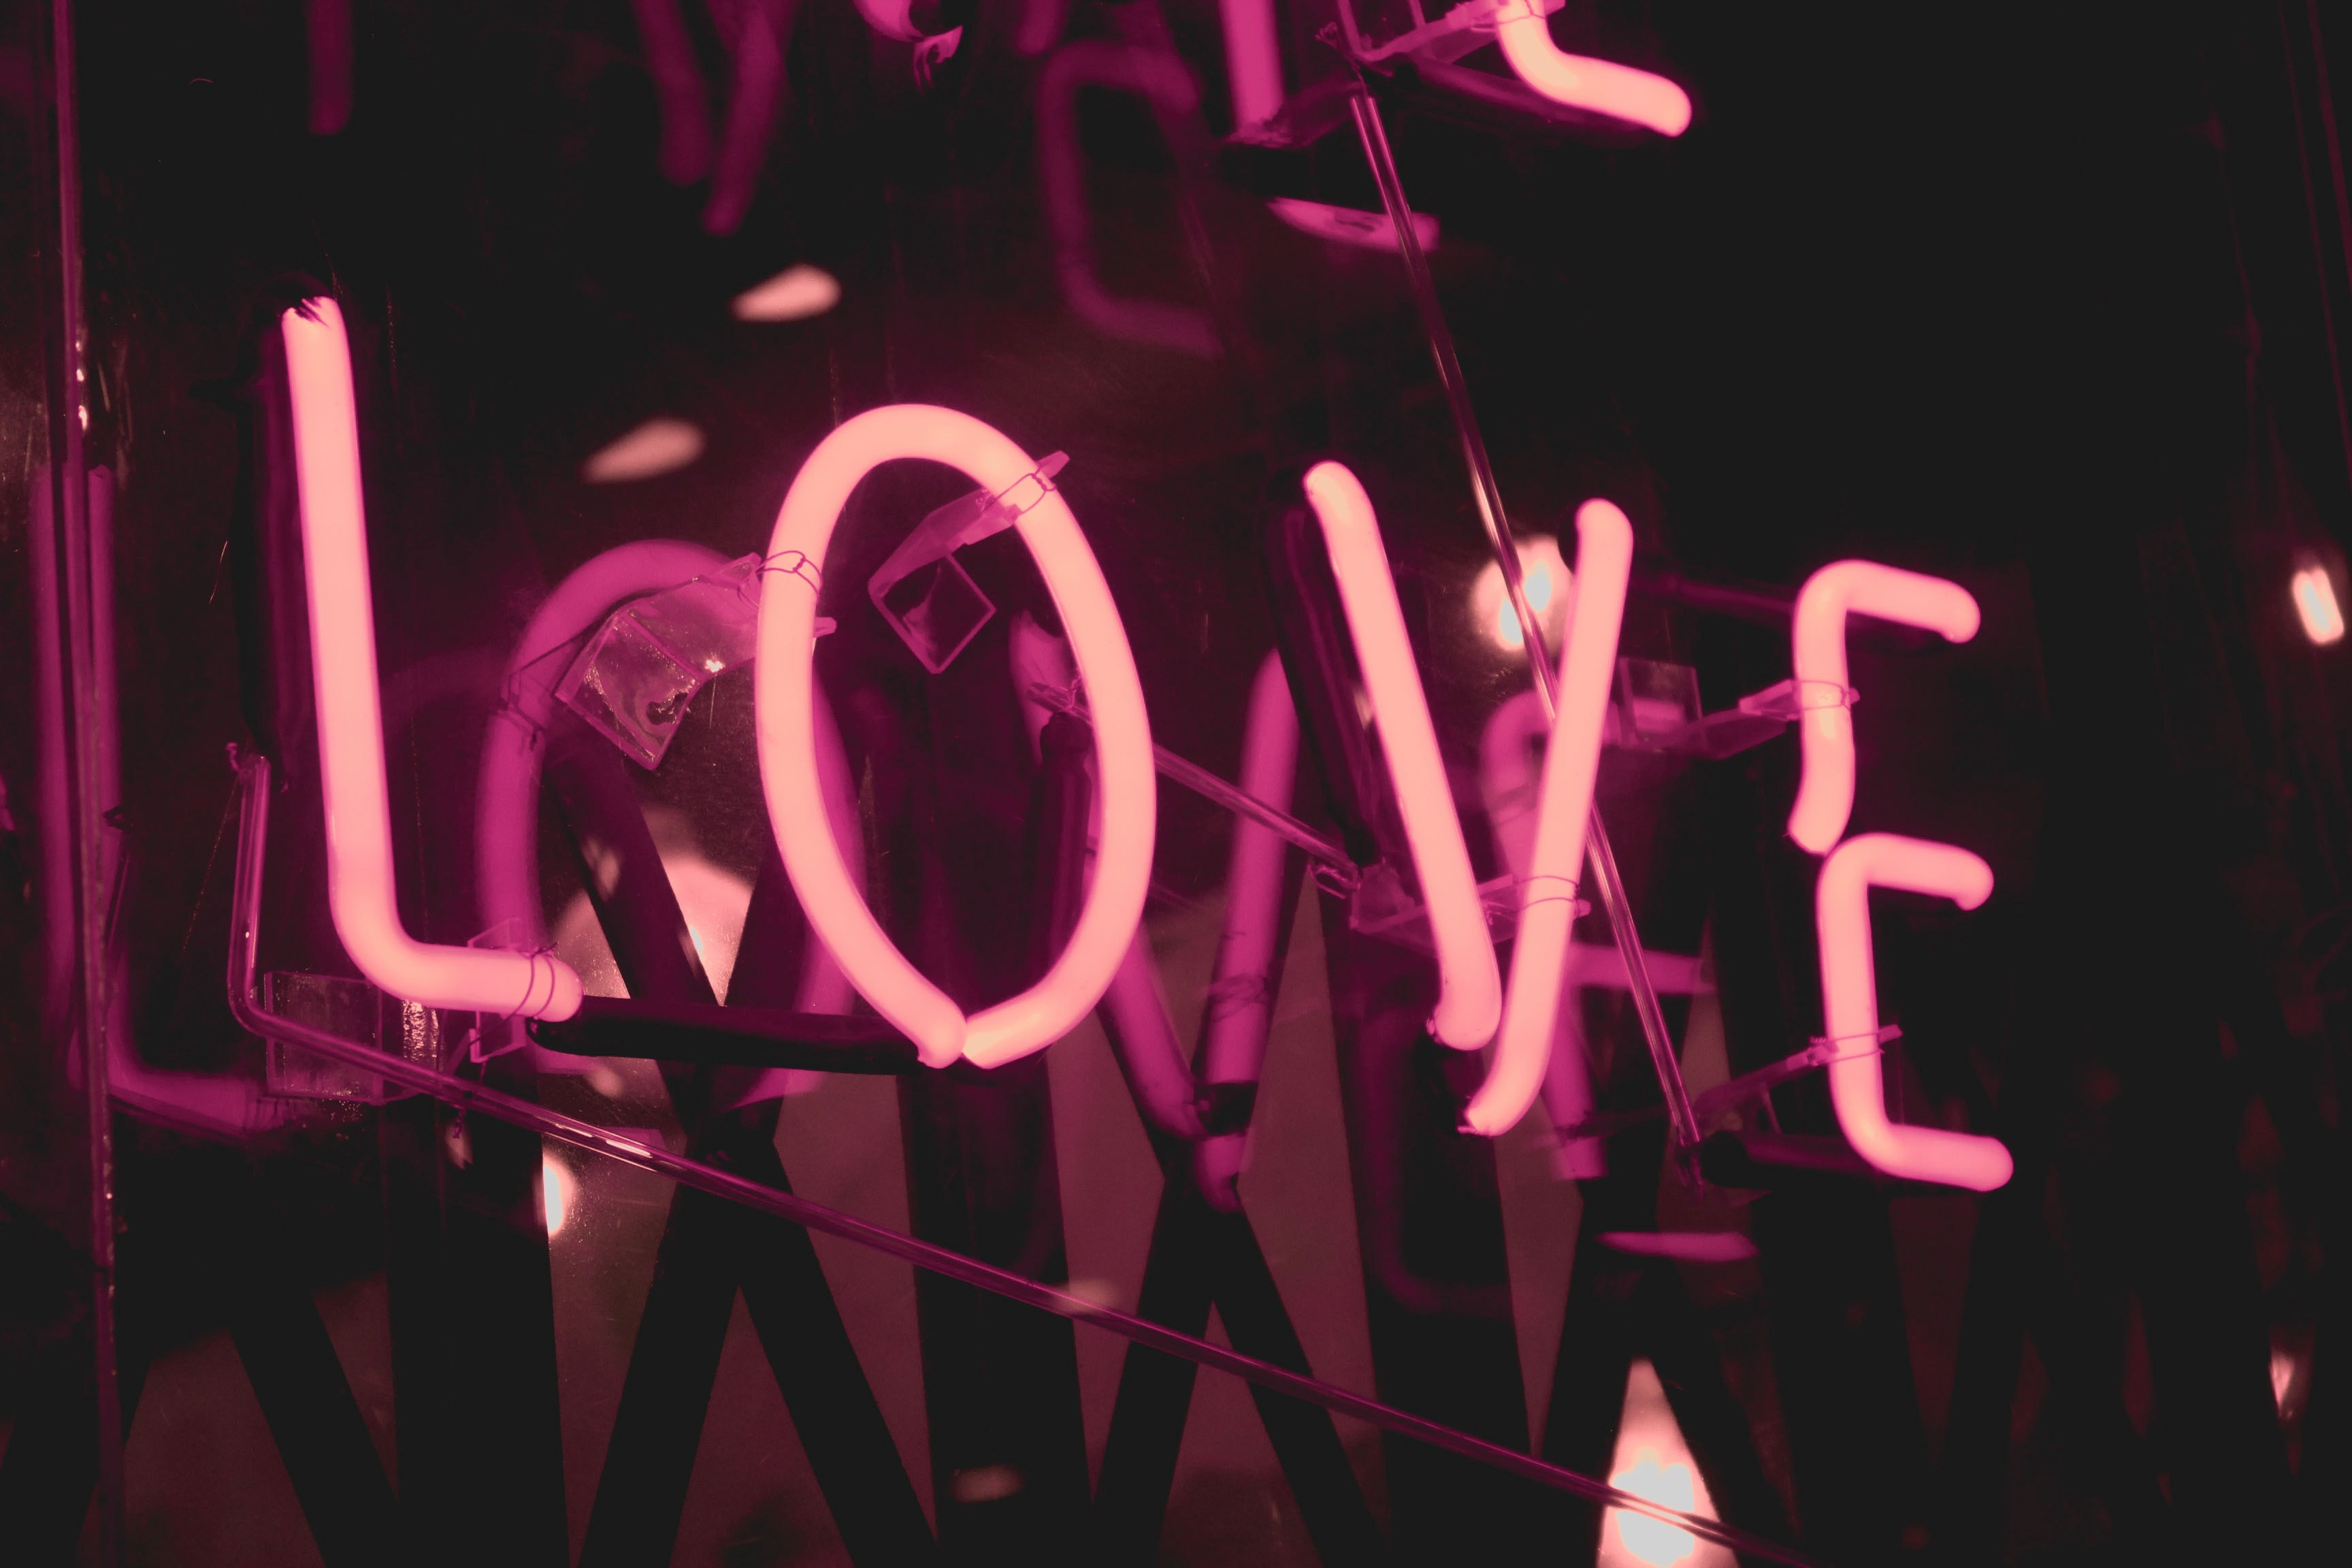 A neon sign of the world love